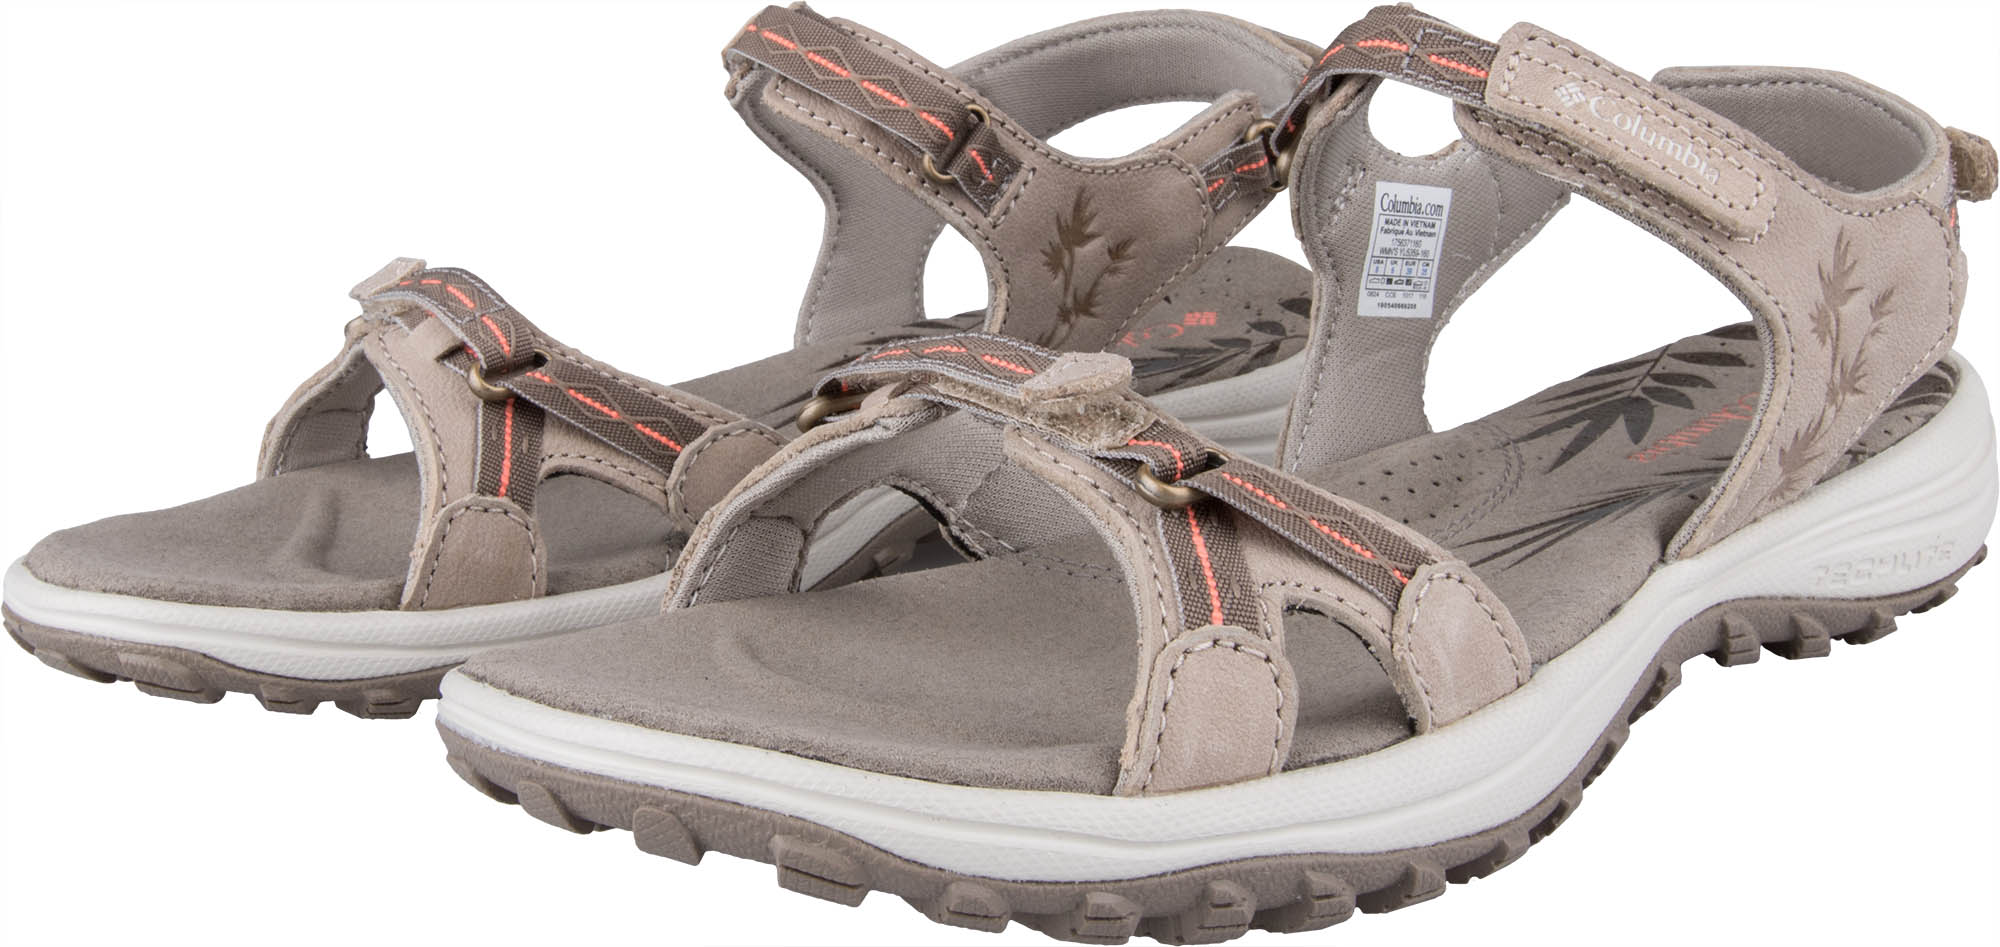 Columbia LONG SANDS SANDALS | sportisimo.pl